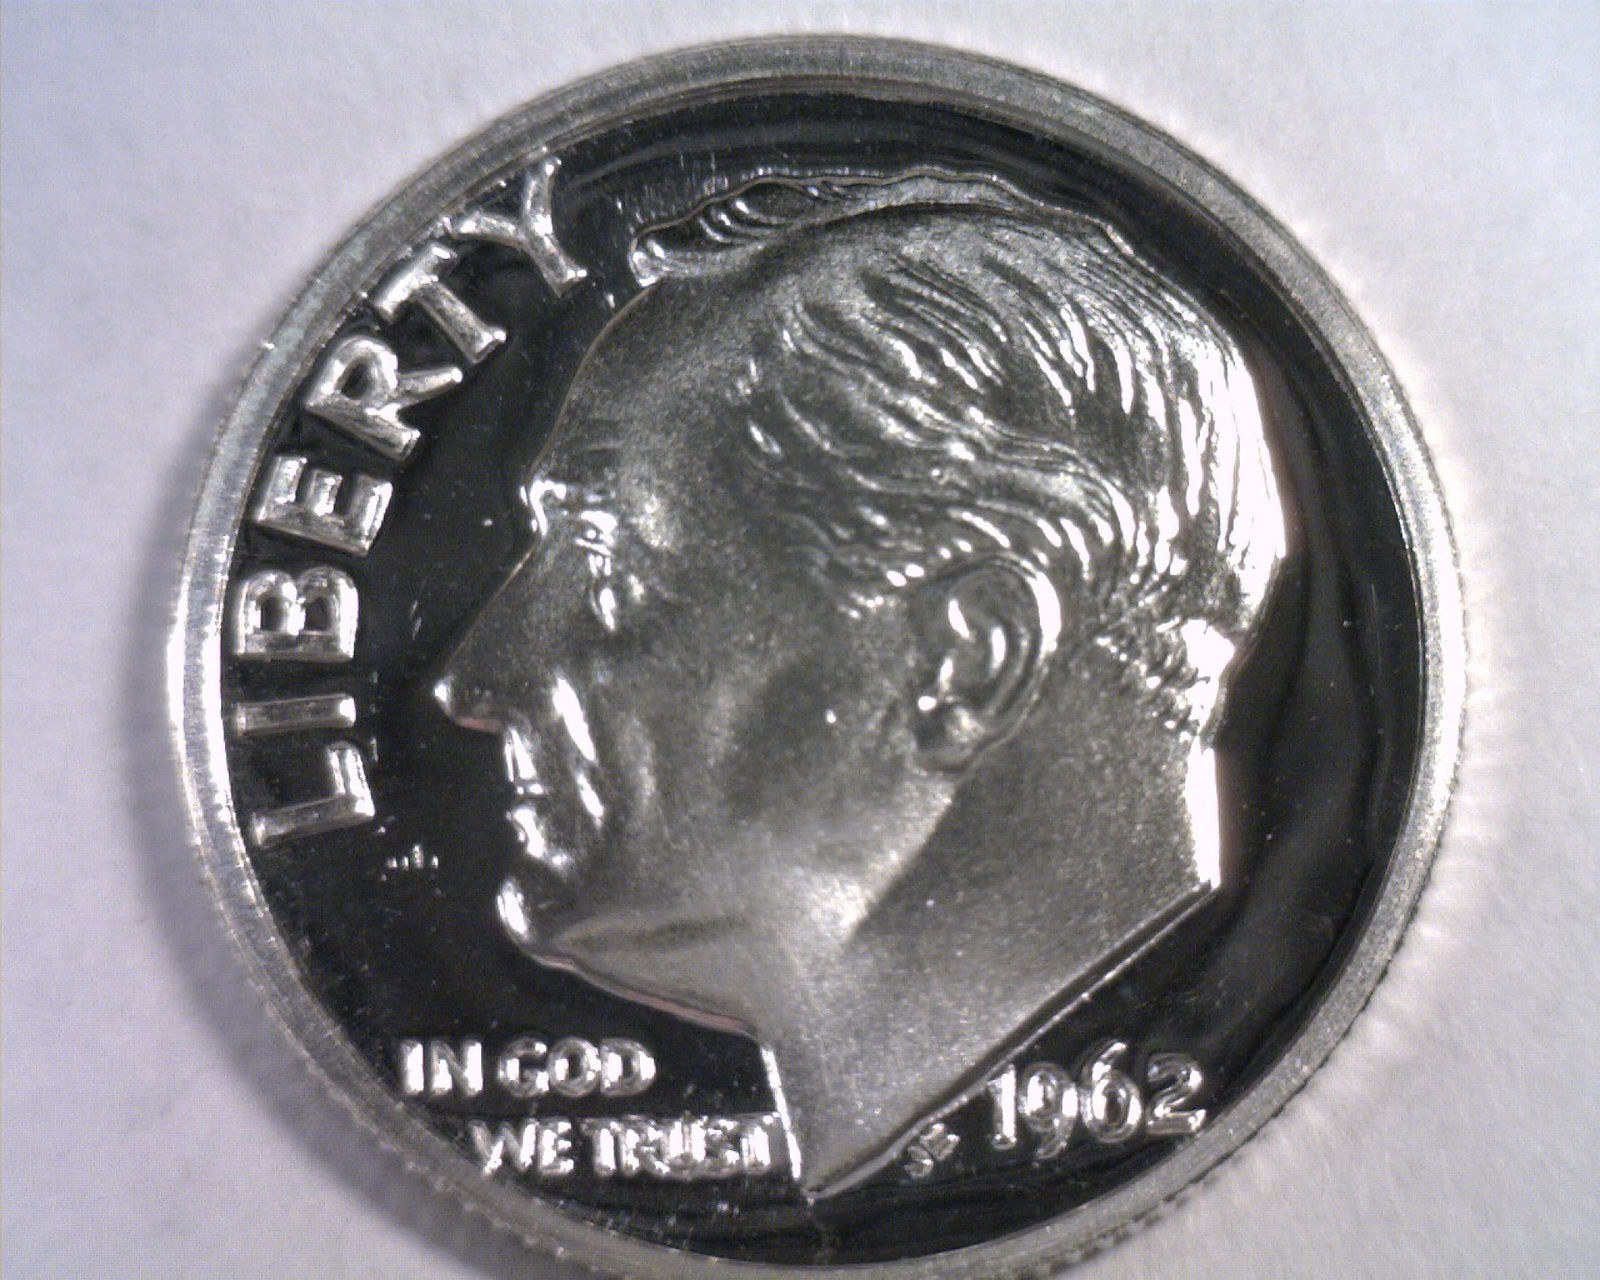 1962 ROOSEVELT DIME GEM / SUPERB PROOF CAMEO GEM / SUPERB PR CAM. NICE ORIGINAL - $14.00